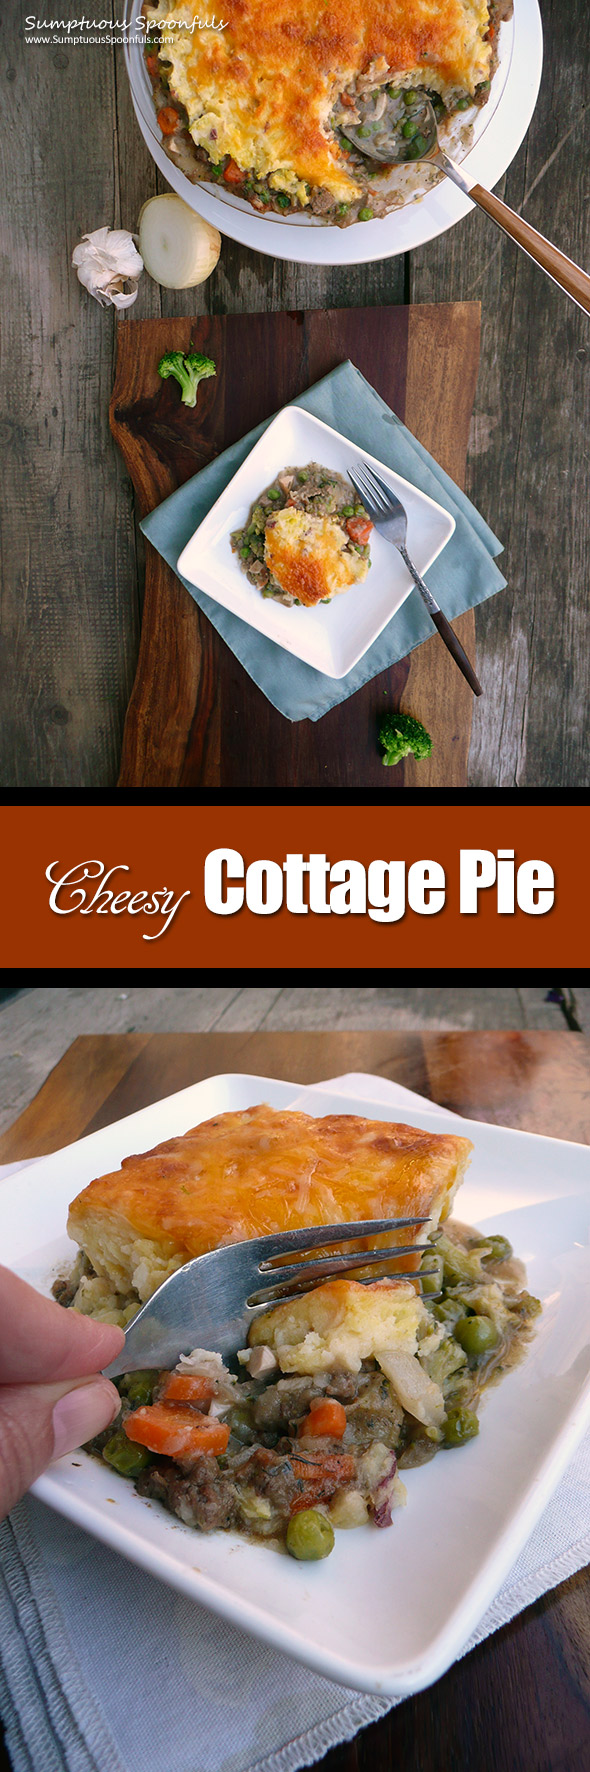 Cheesy Cottage Pie ~ Sumptuous Spoonfuls #beef #potato #pie #recipe